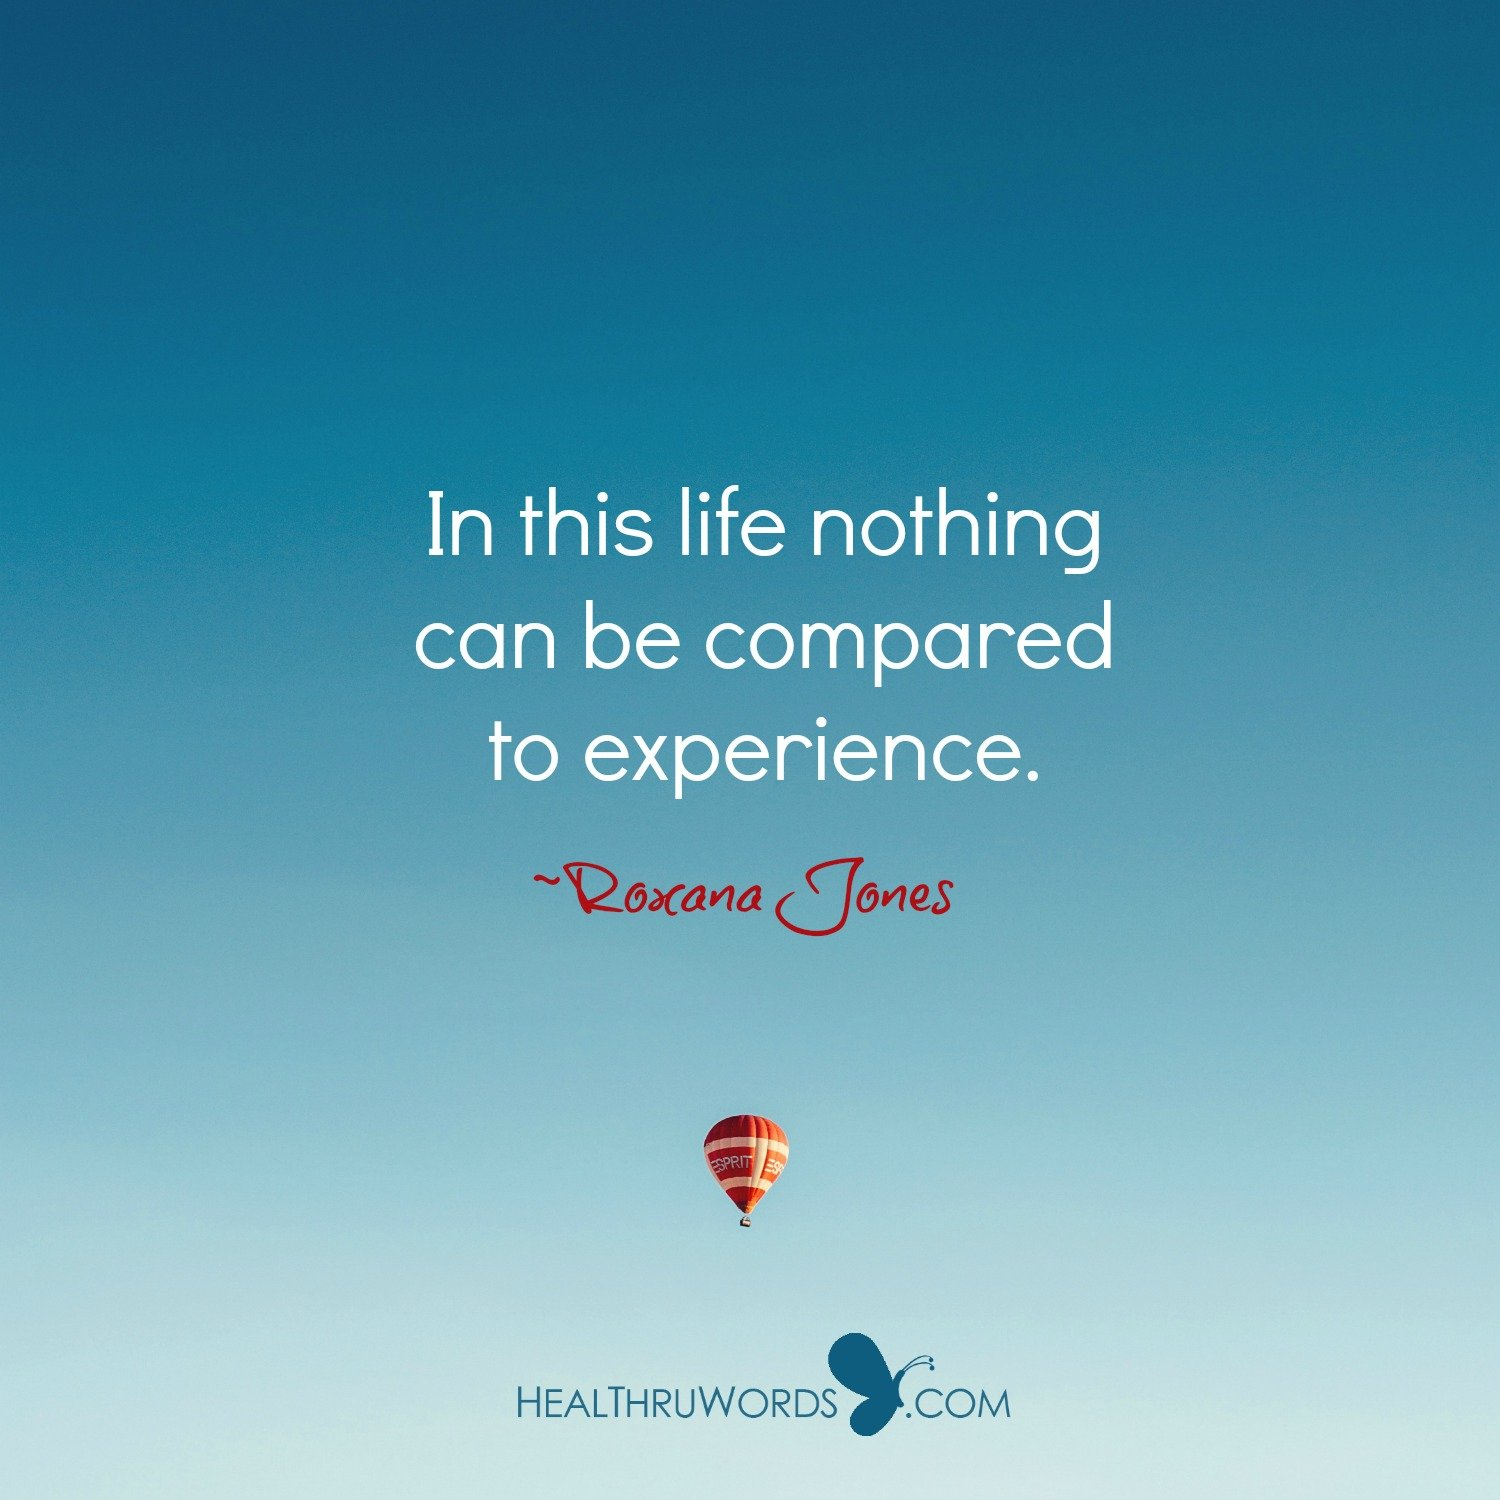 Inspirational Image: Experiences